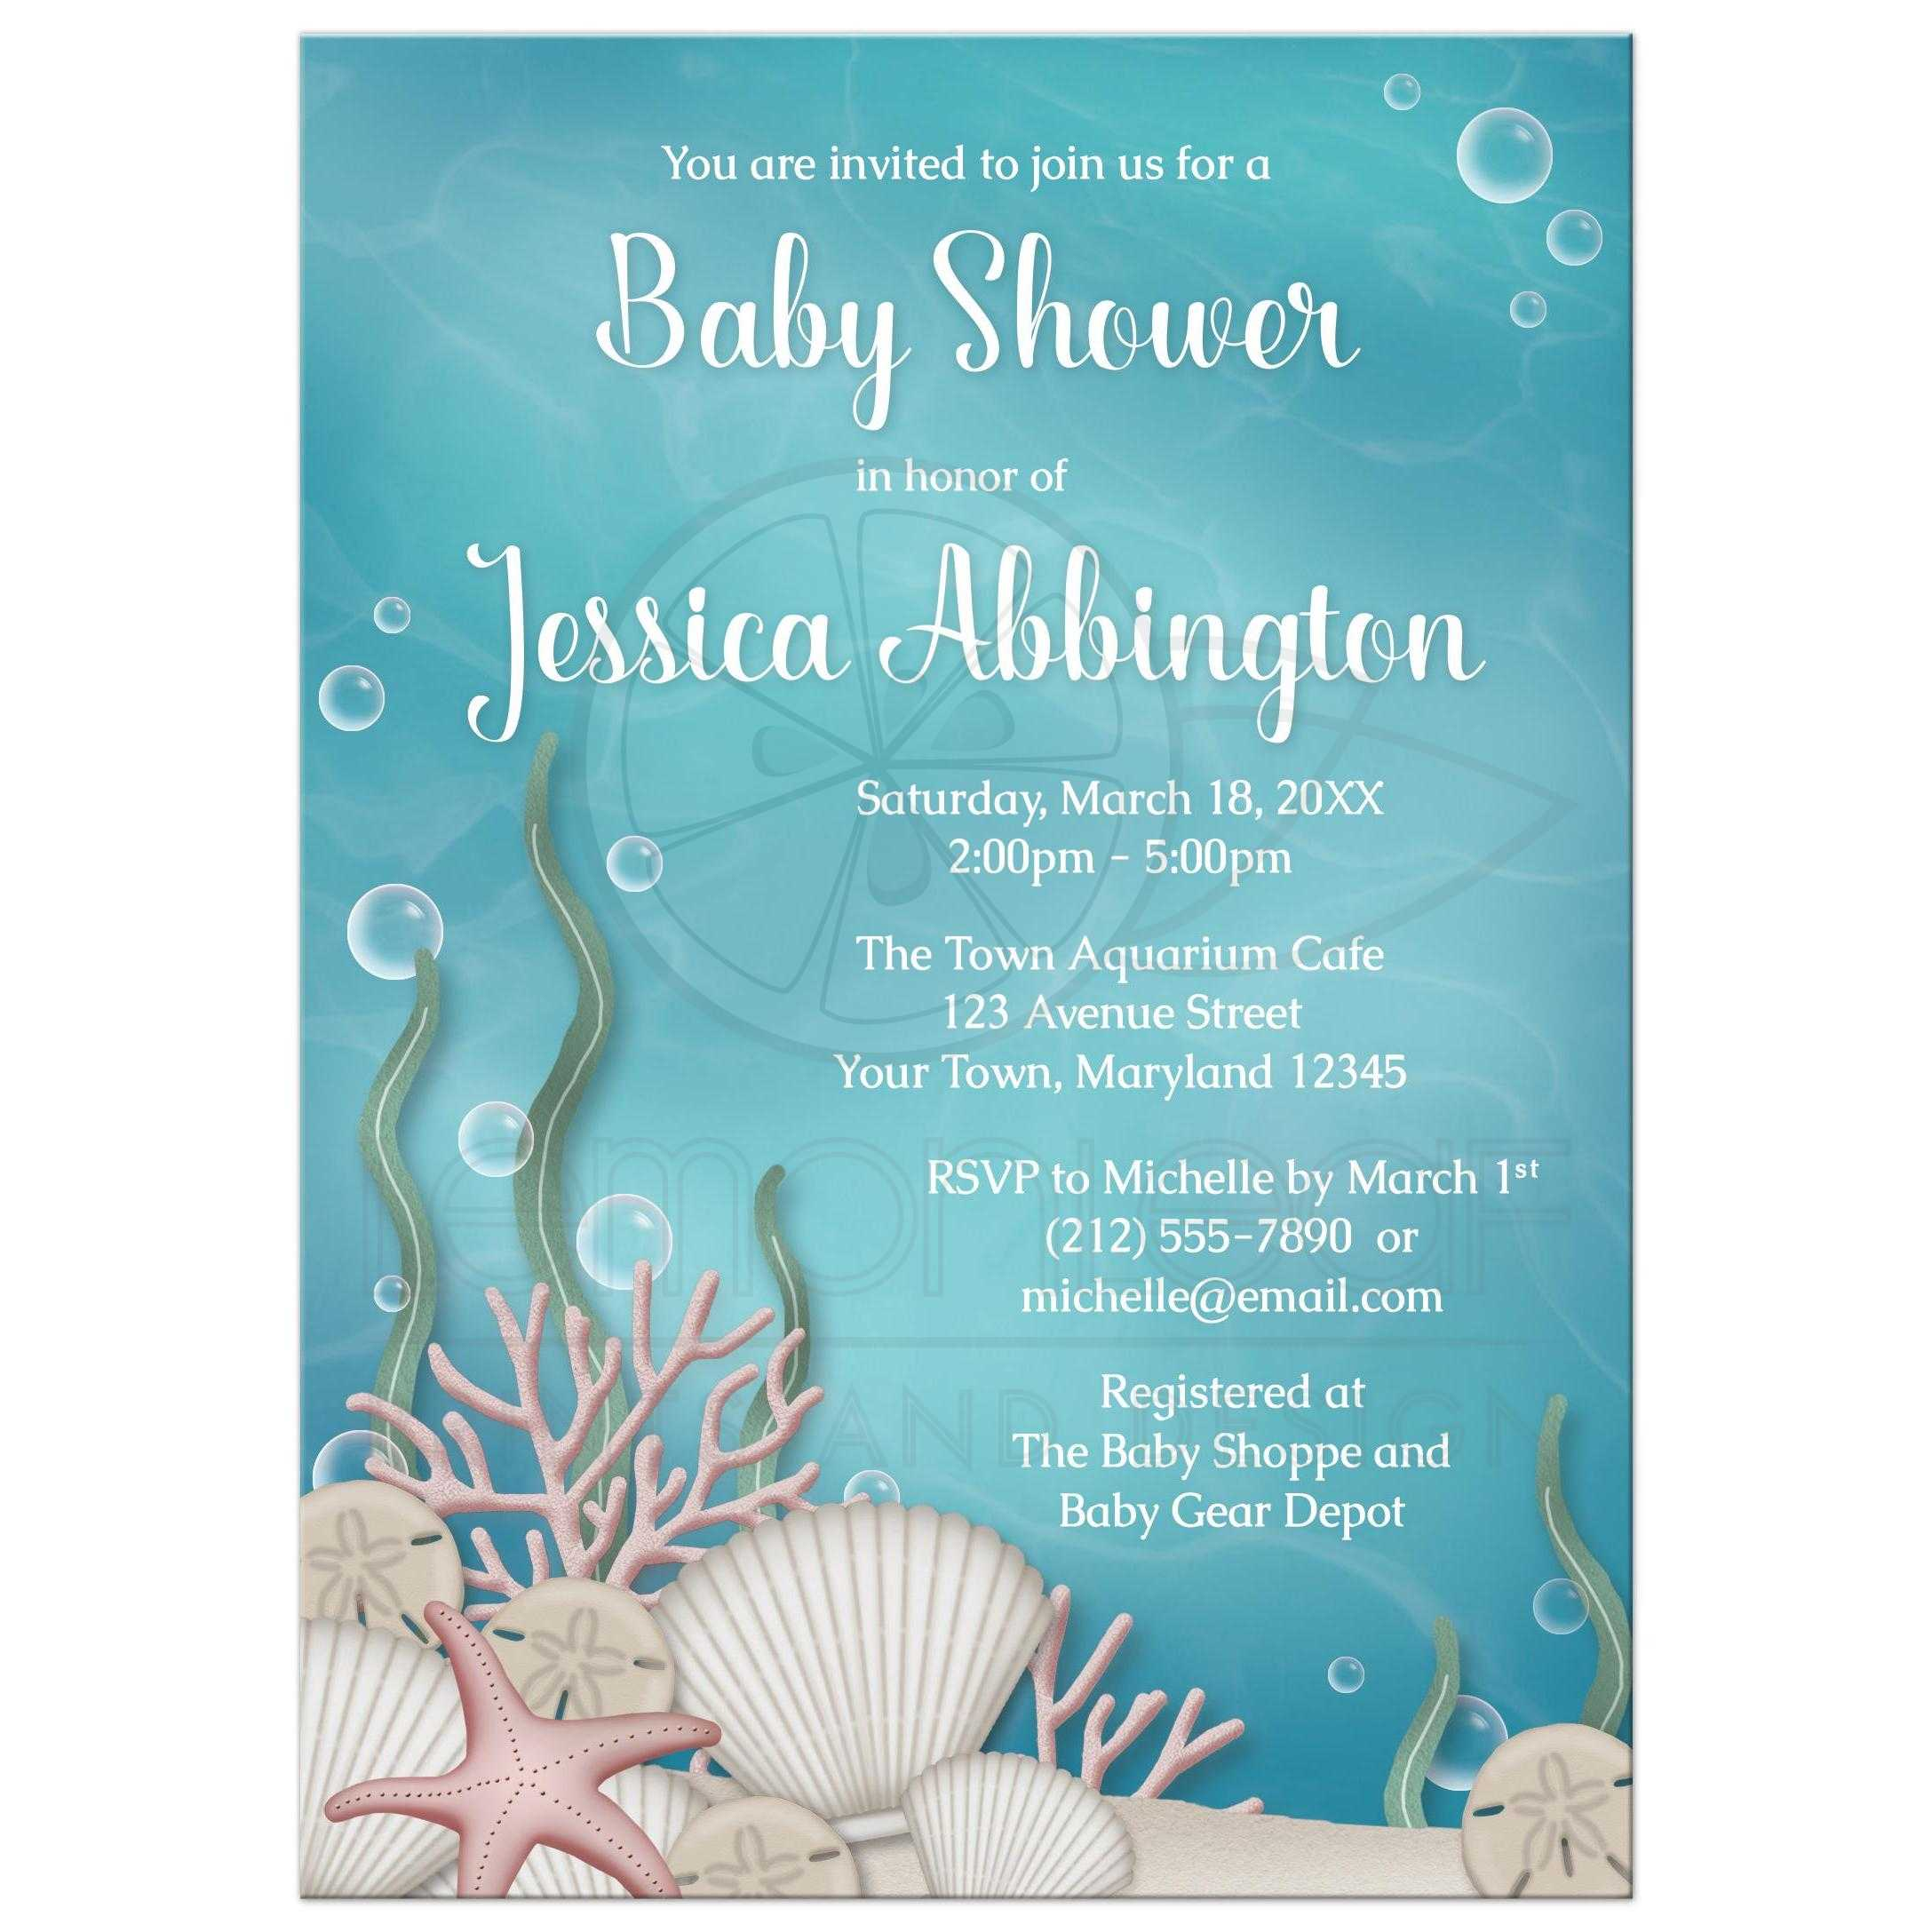 52843 Rectangle Whimsical Under The Sea Baby Shower Invitations Jpg T 1520700822